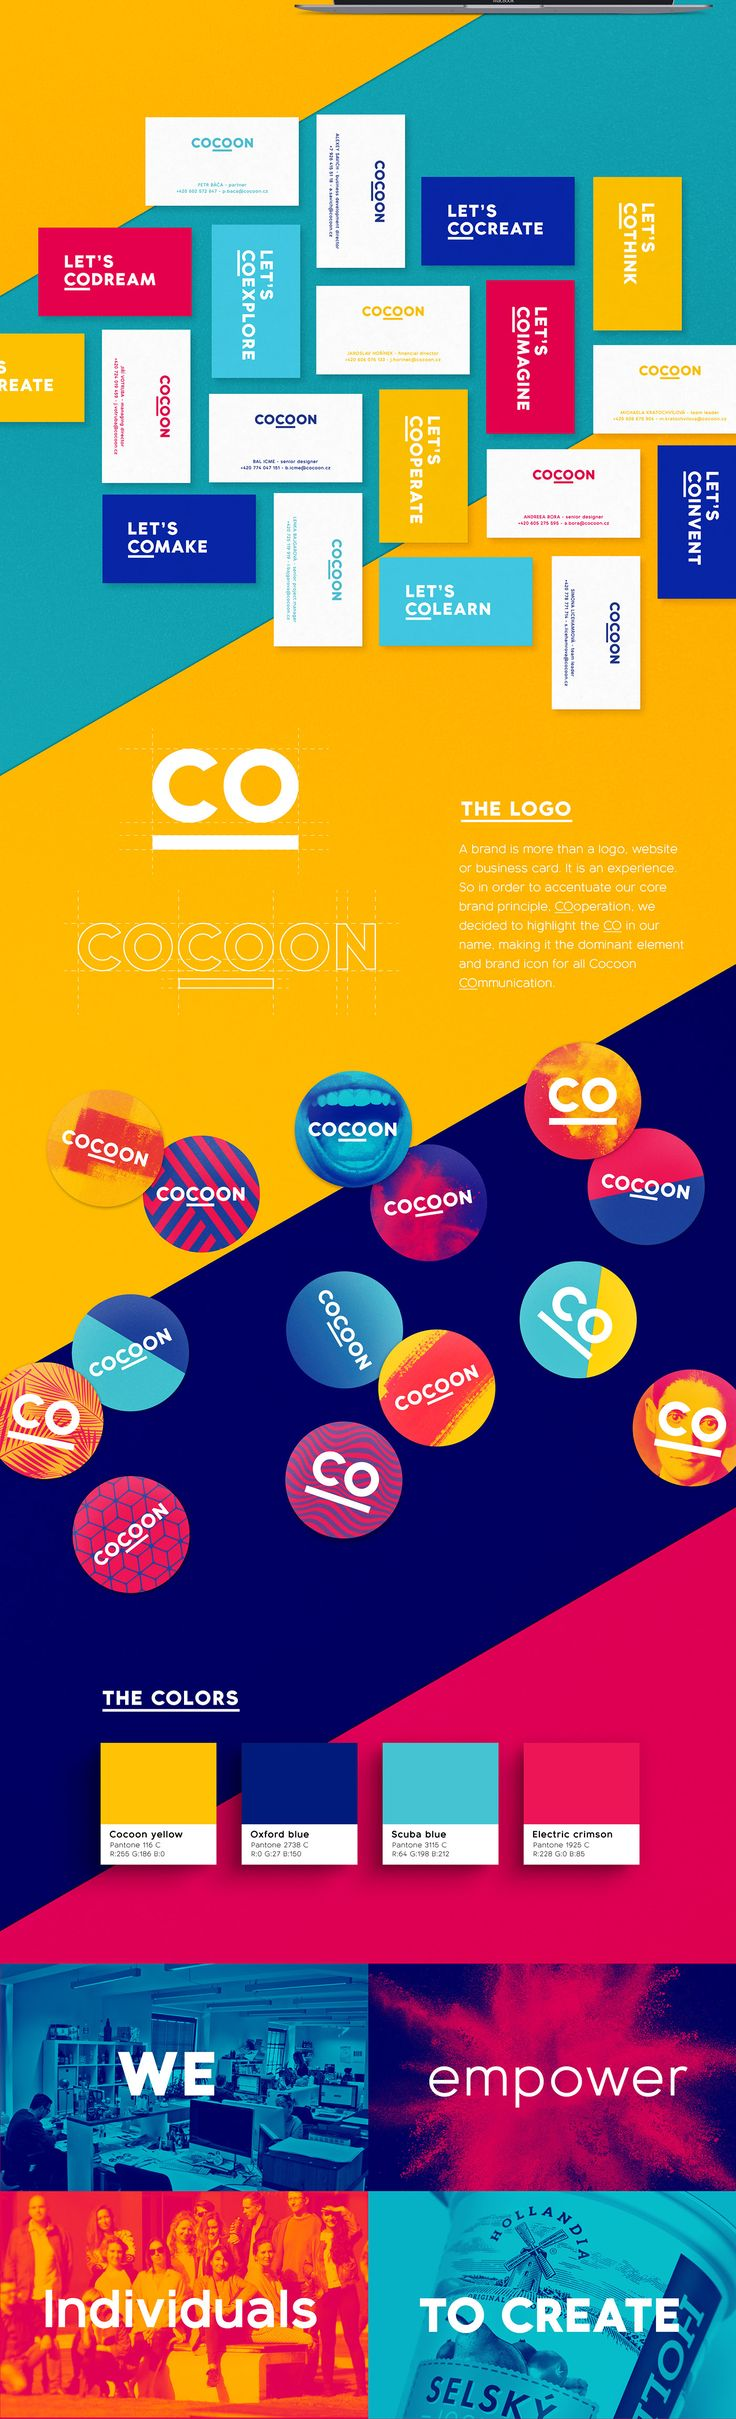 Cocoon Visual Identity on Behance